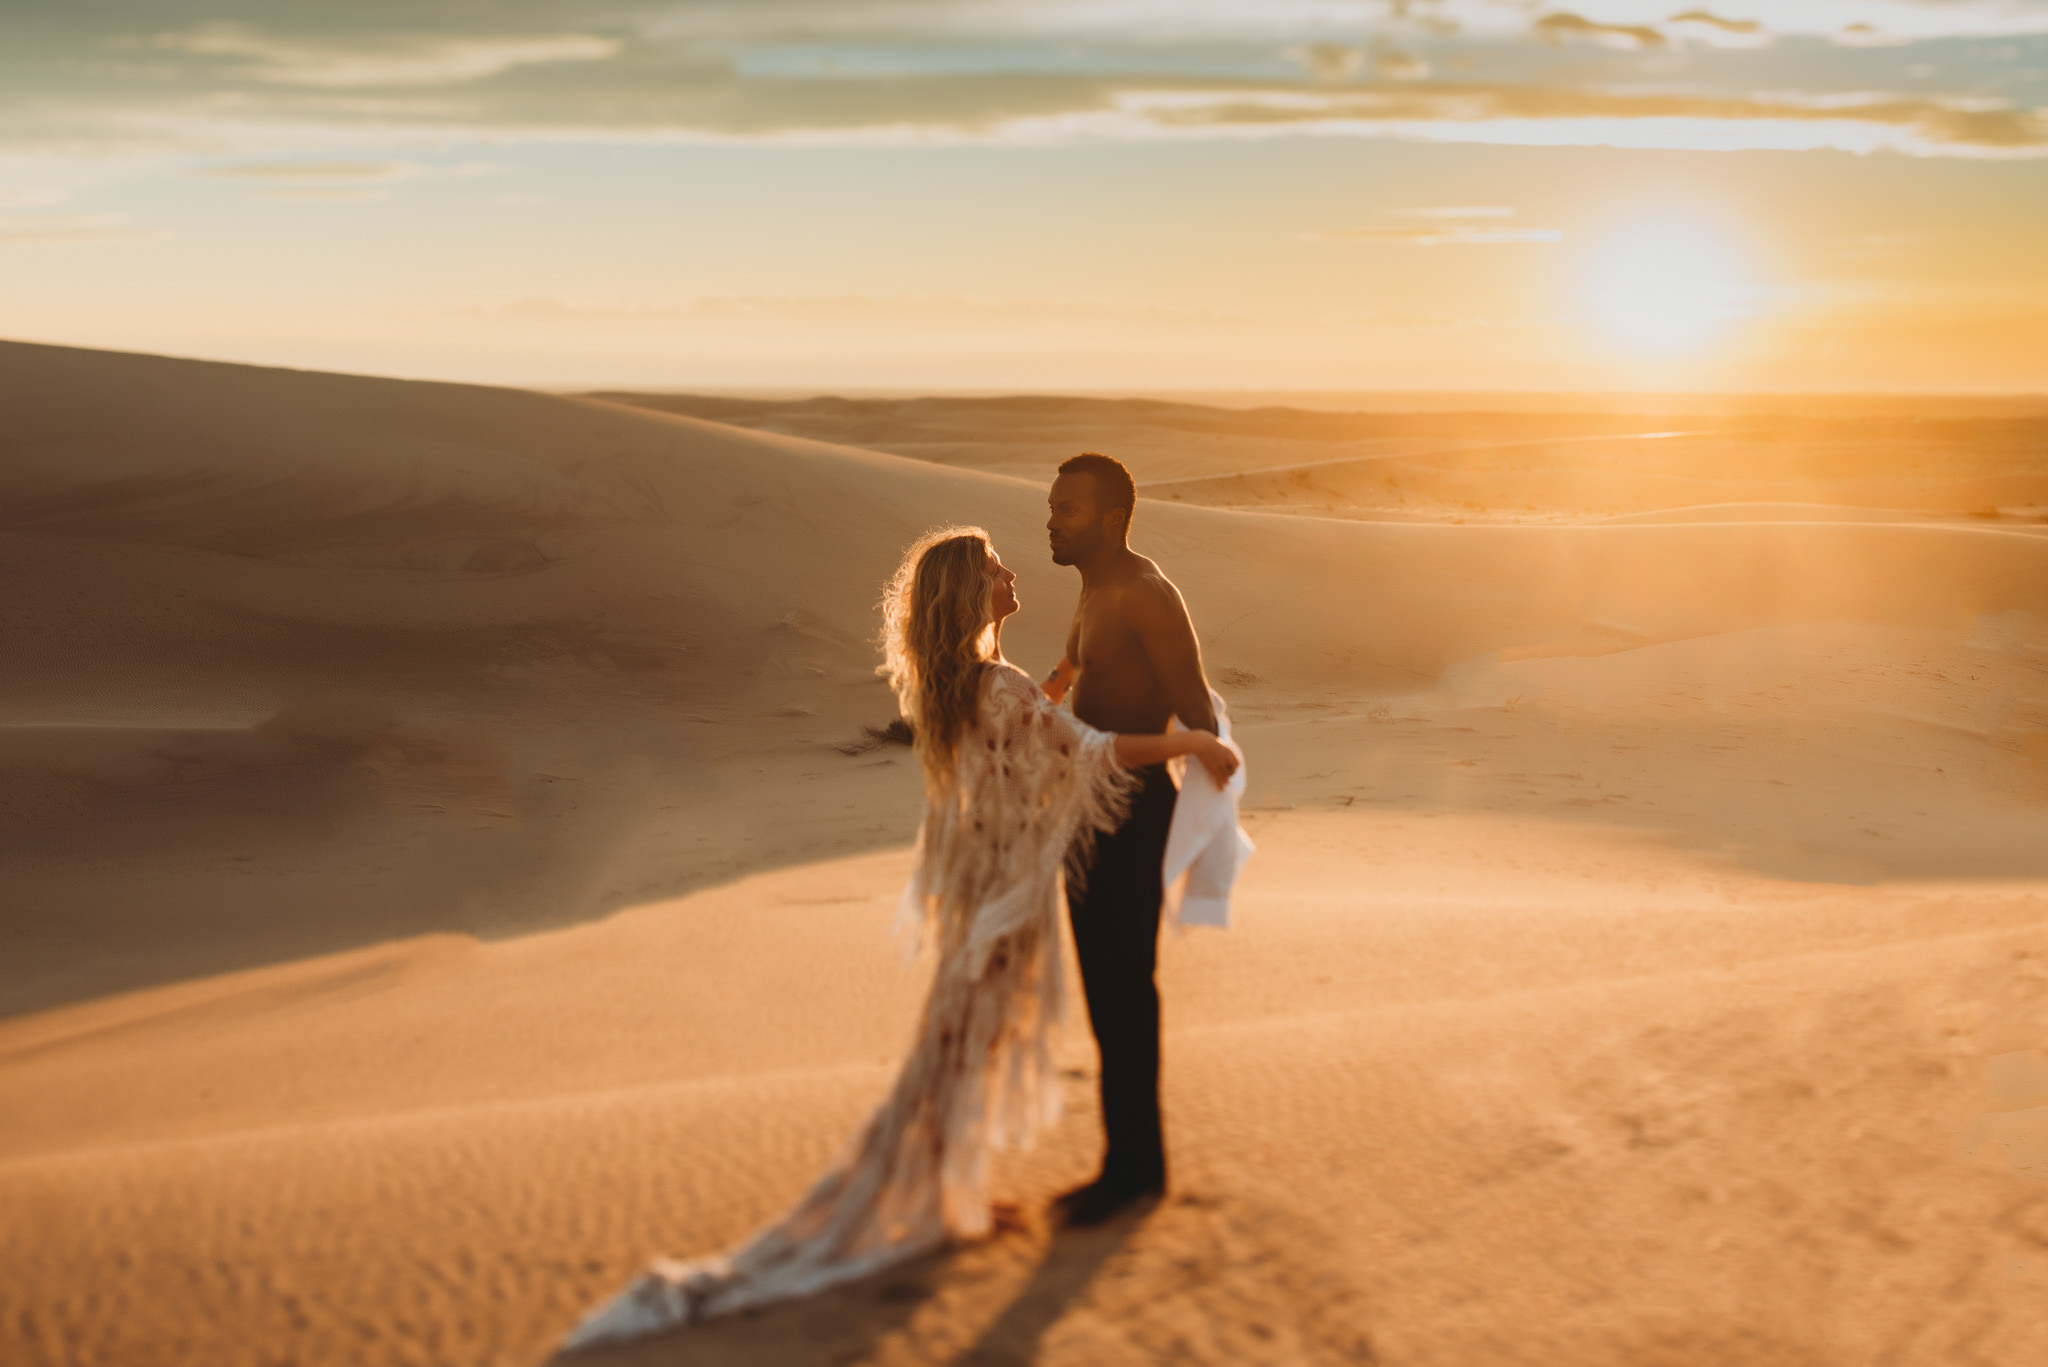 A man and a woman are embracing each other and standing on sand dunes.